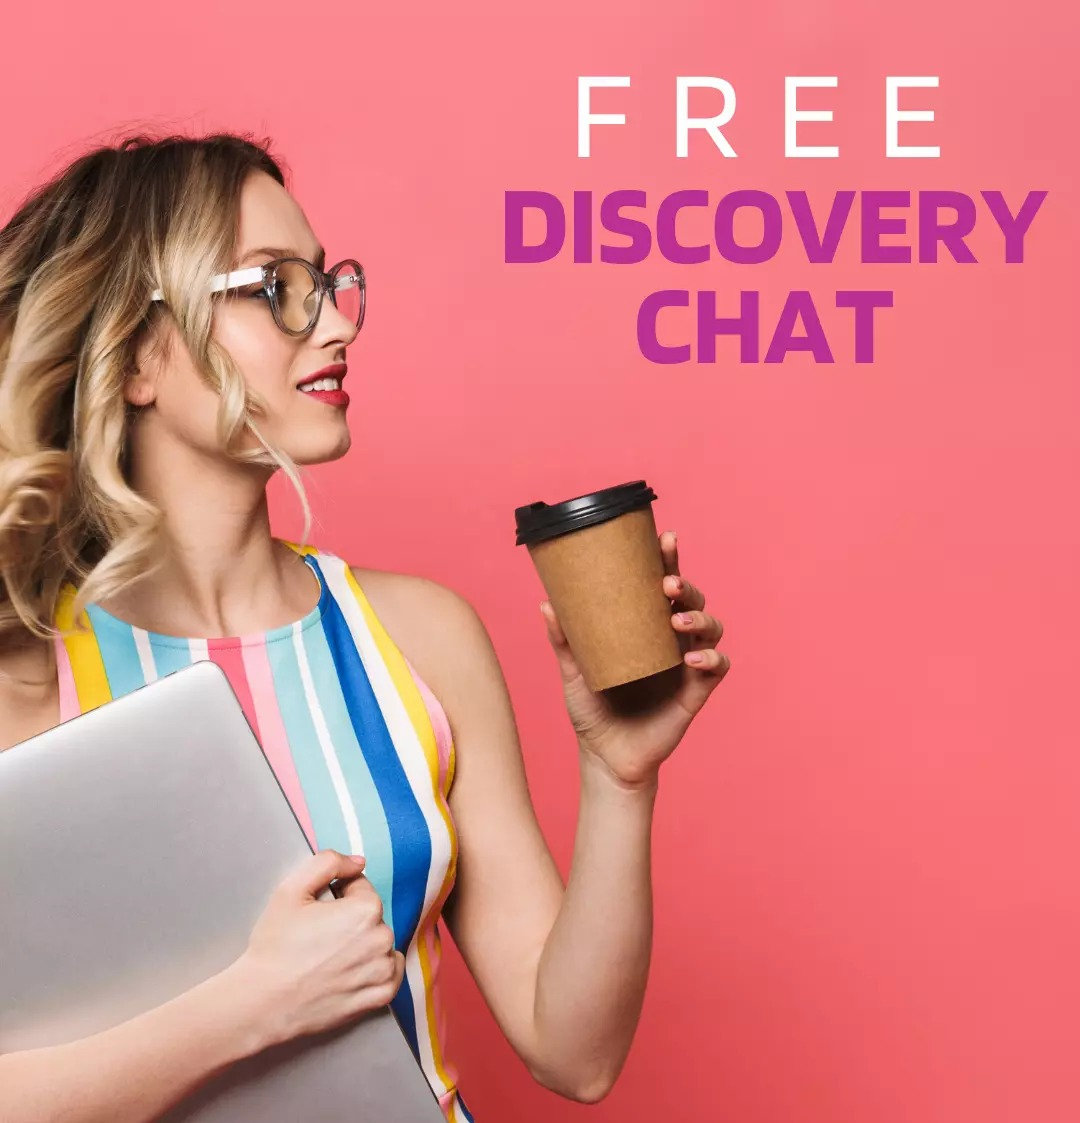 FREE Discovery Chat